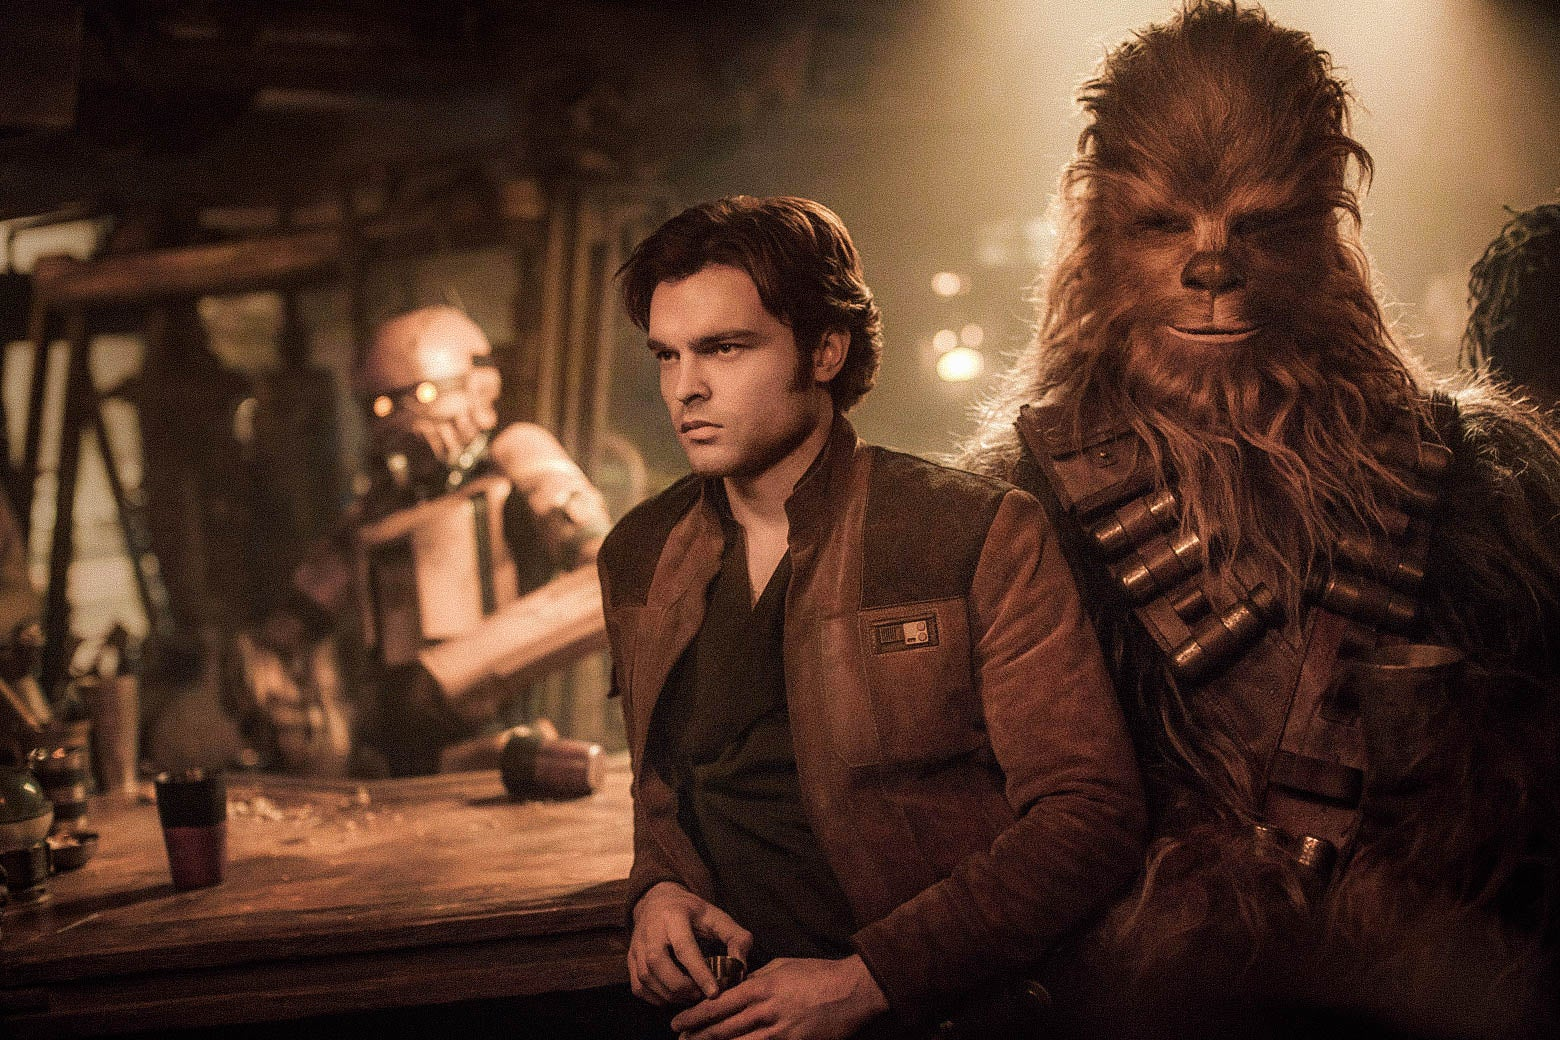 Alden Ehrenreich as Han Solo and Joonas Suotamo as Chewbacca in Solo: A Star Wars Story.